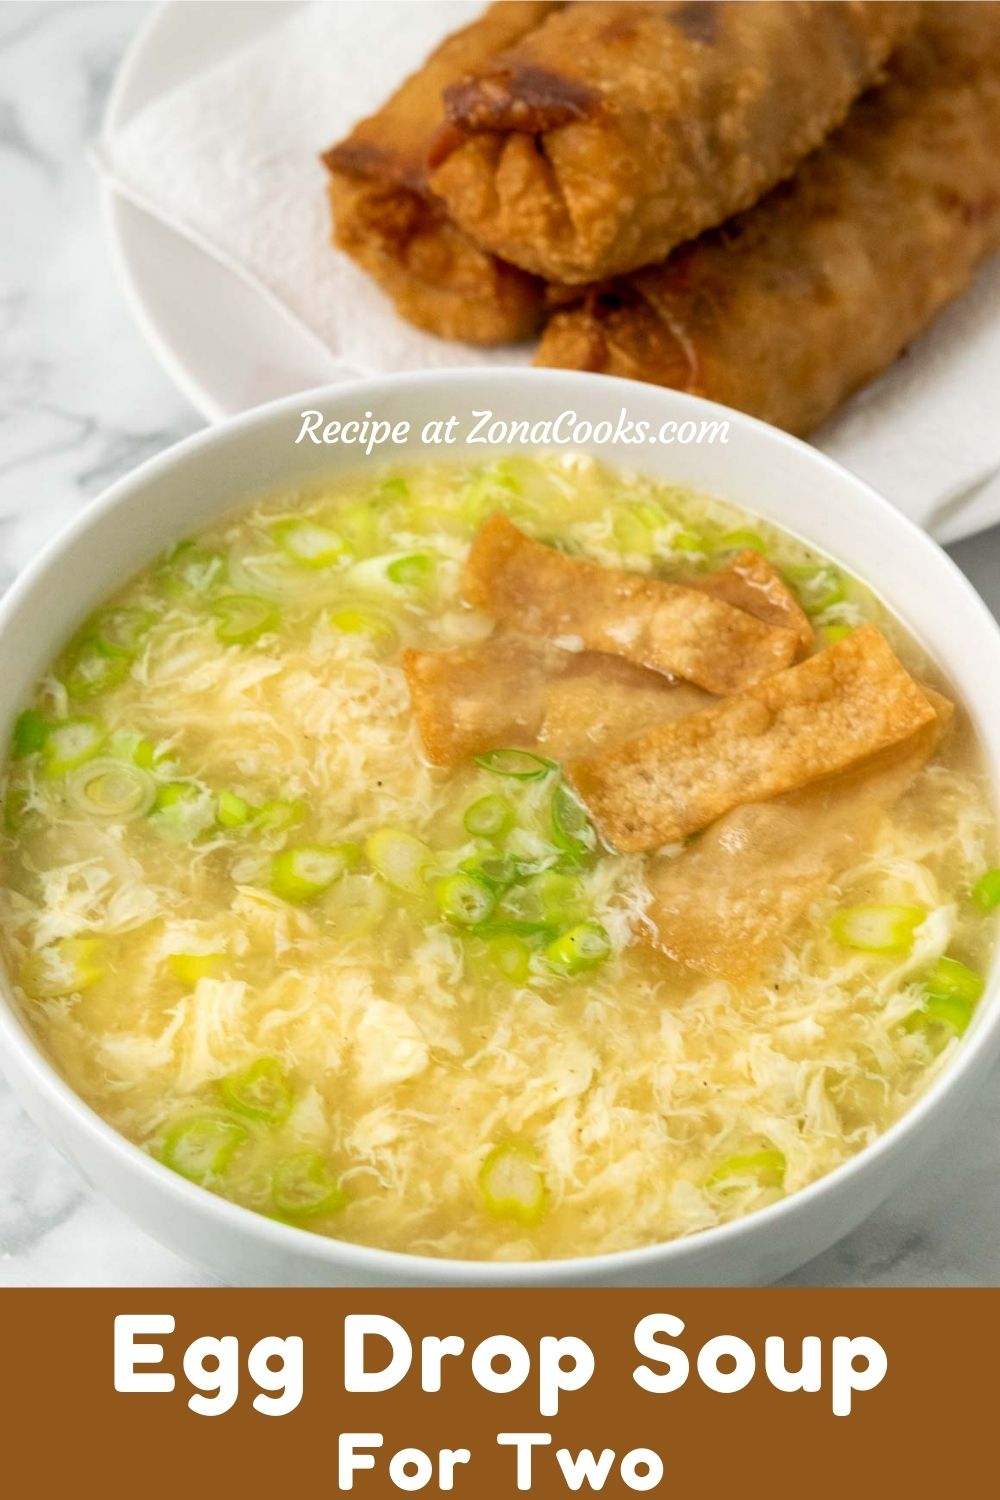 a bowl of egg drop soup and crispy wonton croutons with a side of eggrolls and text reading recipe at zonacooks.com egg drop soup for two.